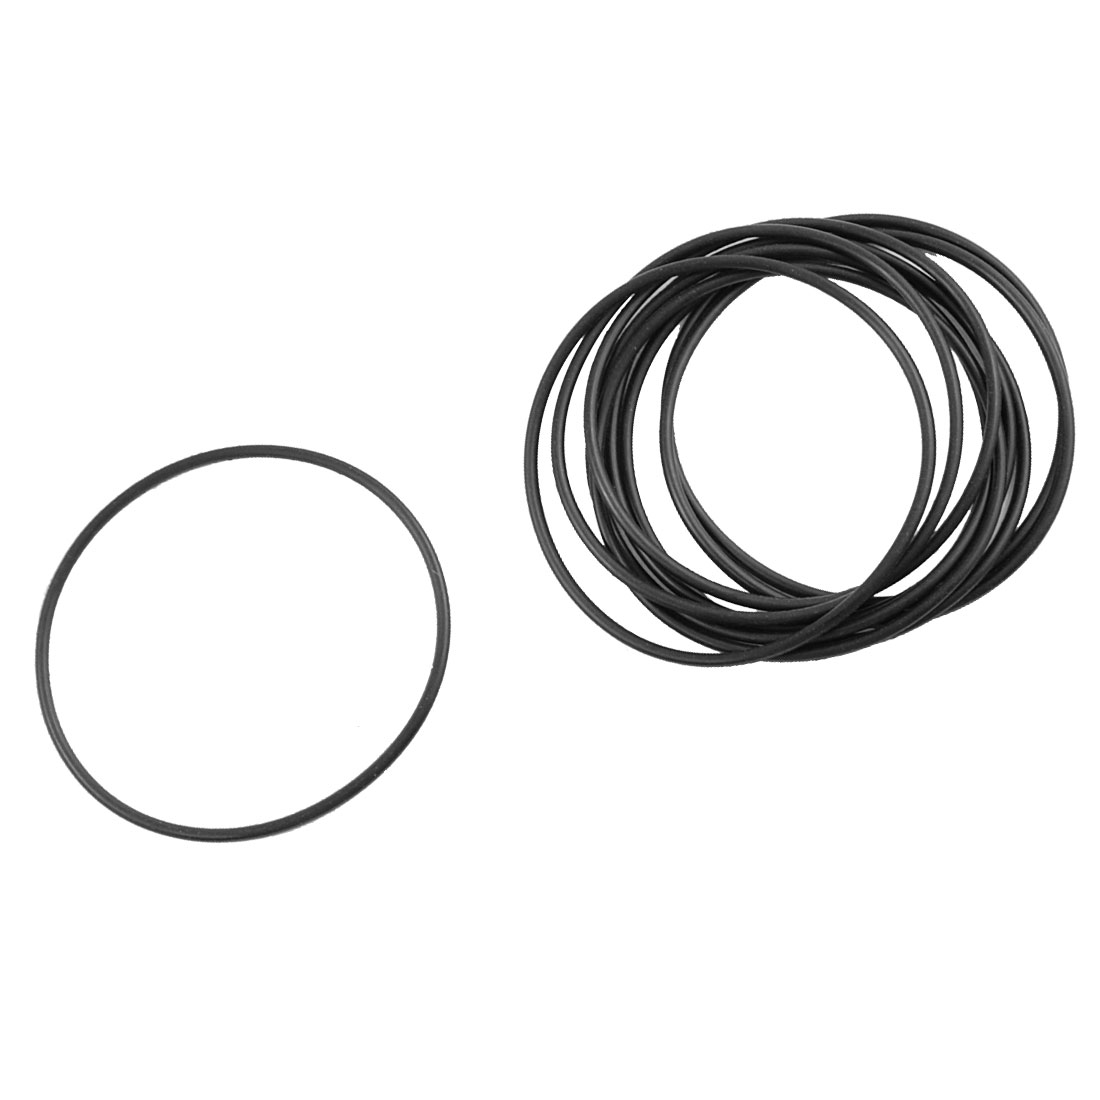 10 Pcs Metric O Rings Black Nitrile Rubber 60mm OD 2mm Thick